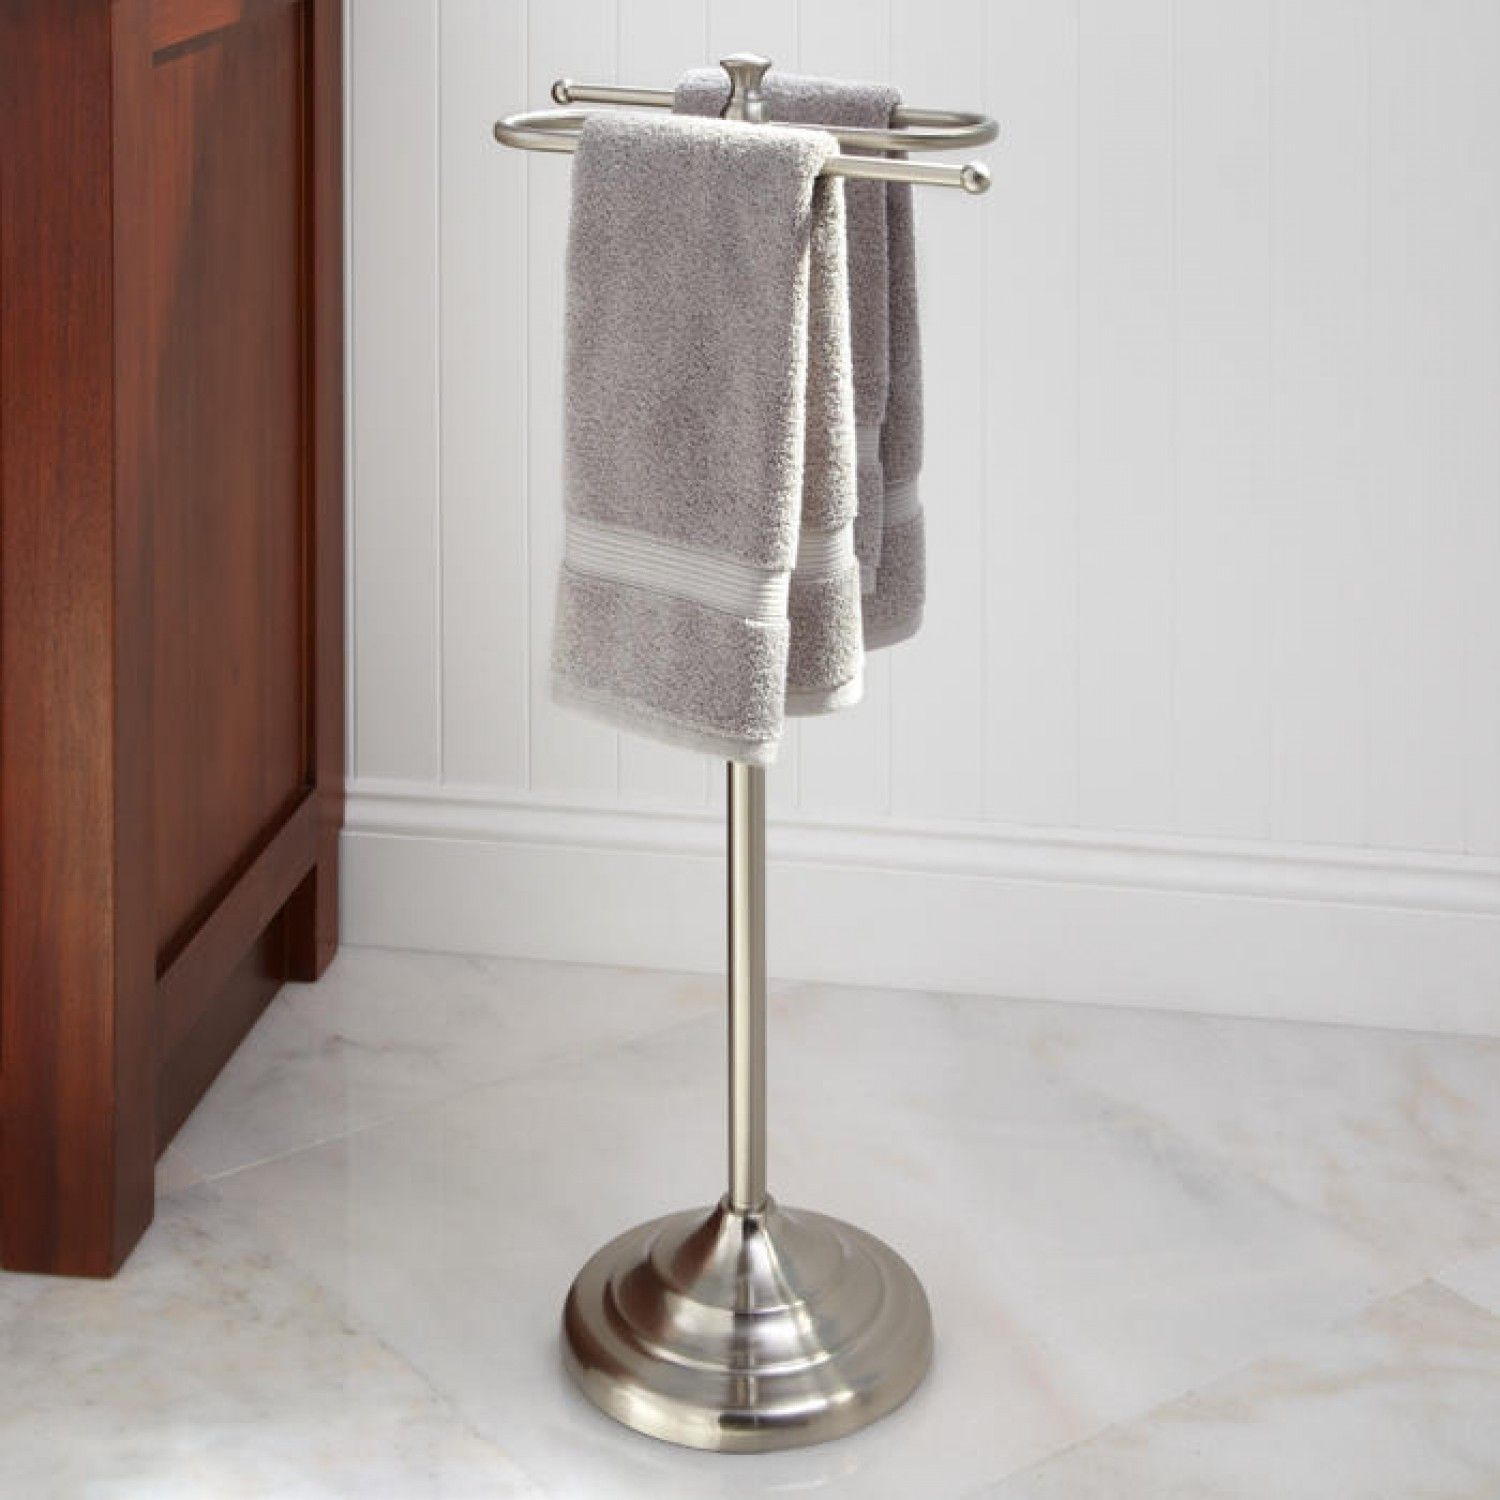 Smithfield Free Standing Towel Holder